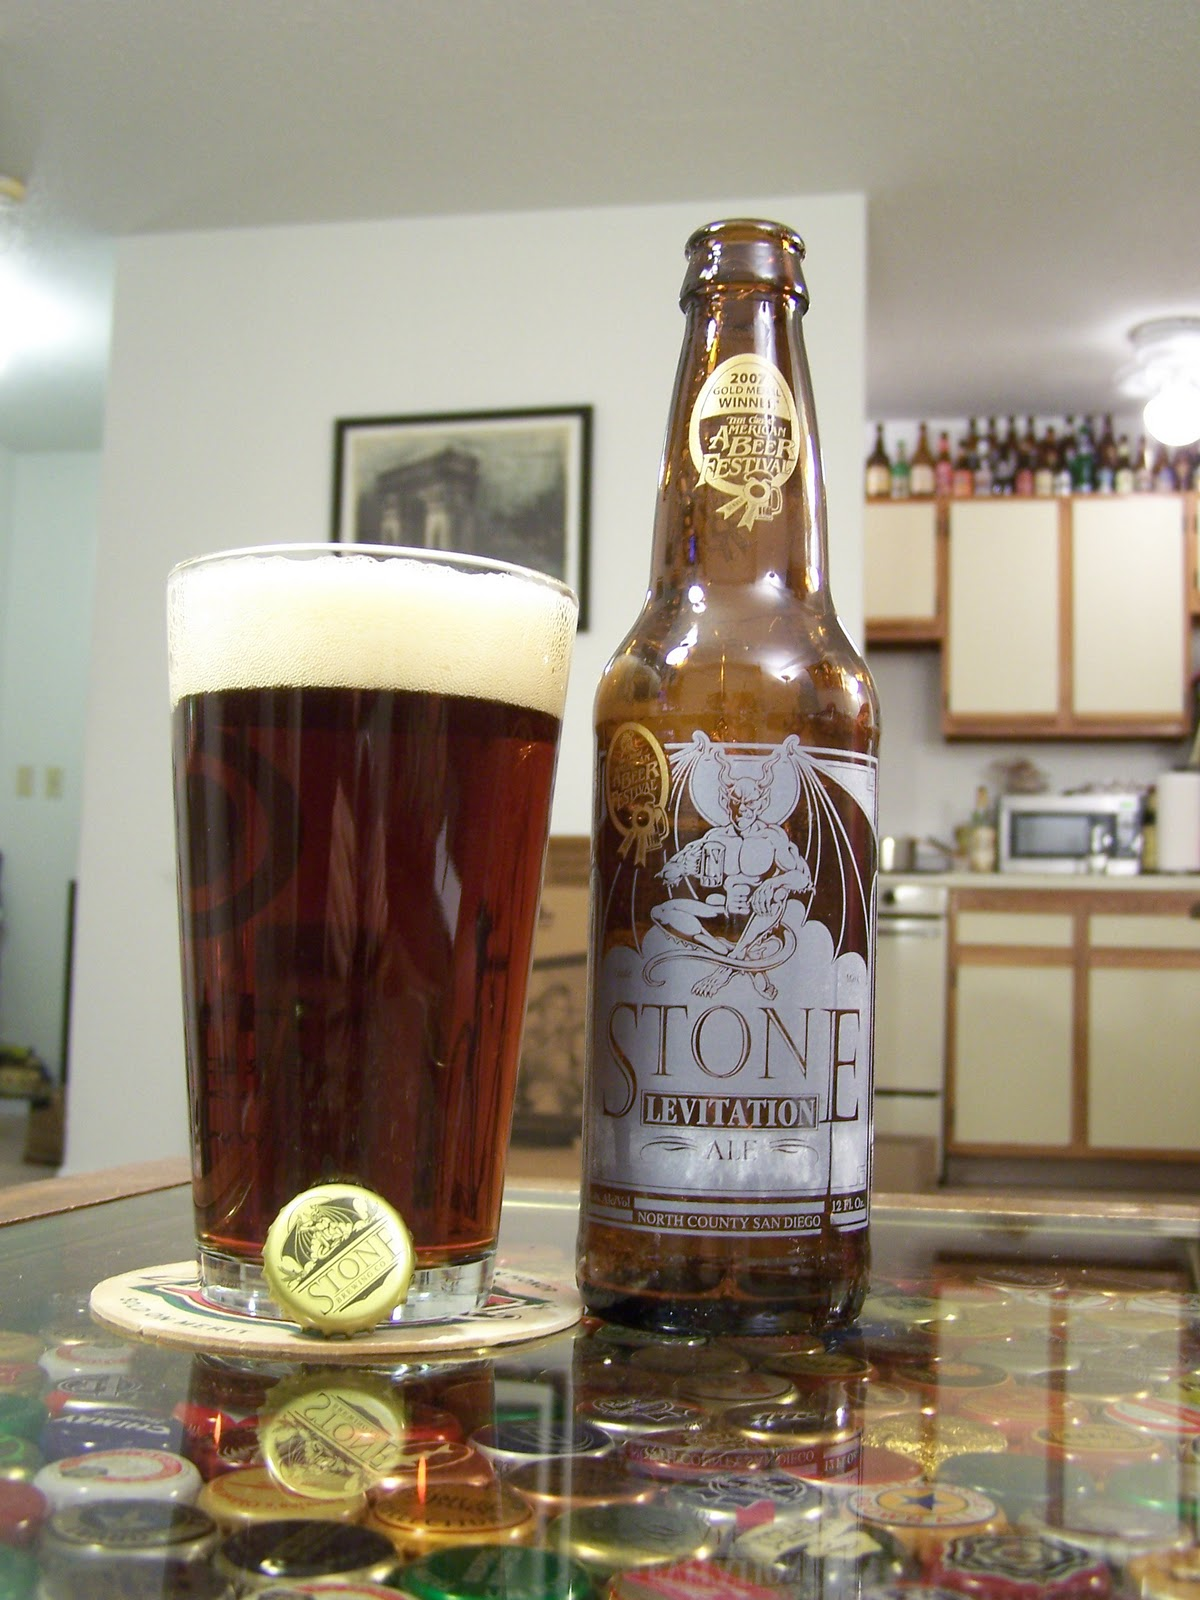 Stone Levitation Beer : Sippytimebeer review a round table of drunks part